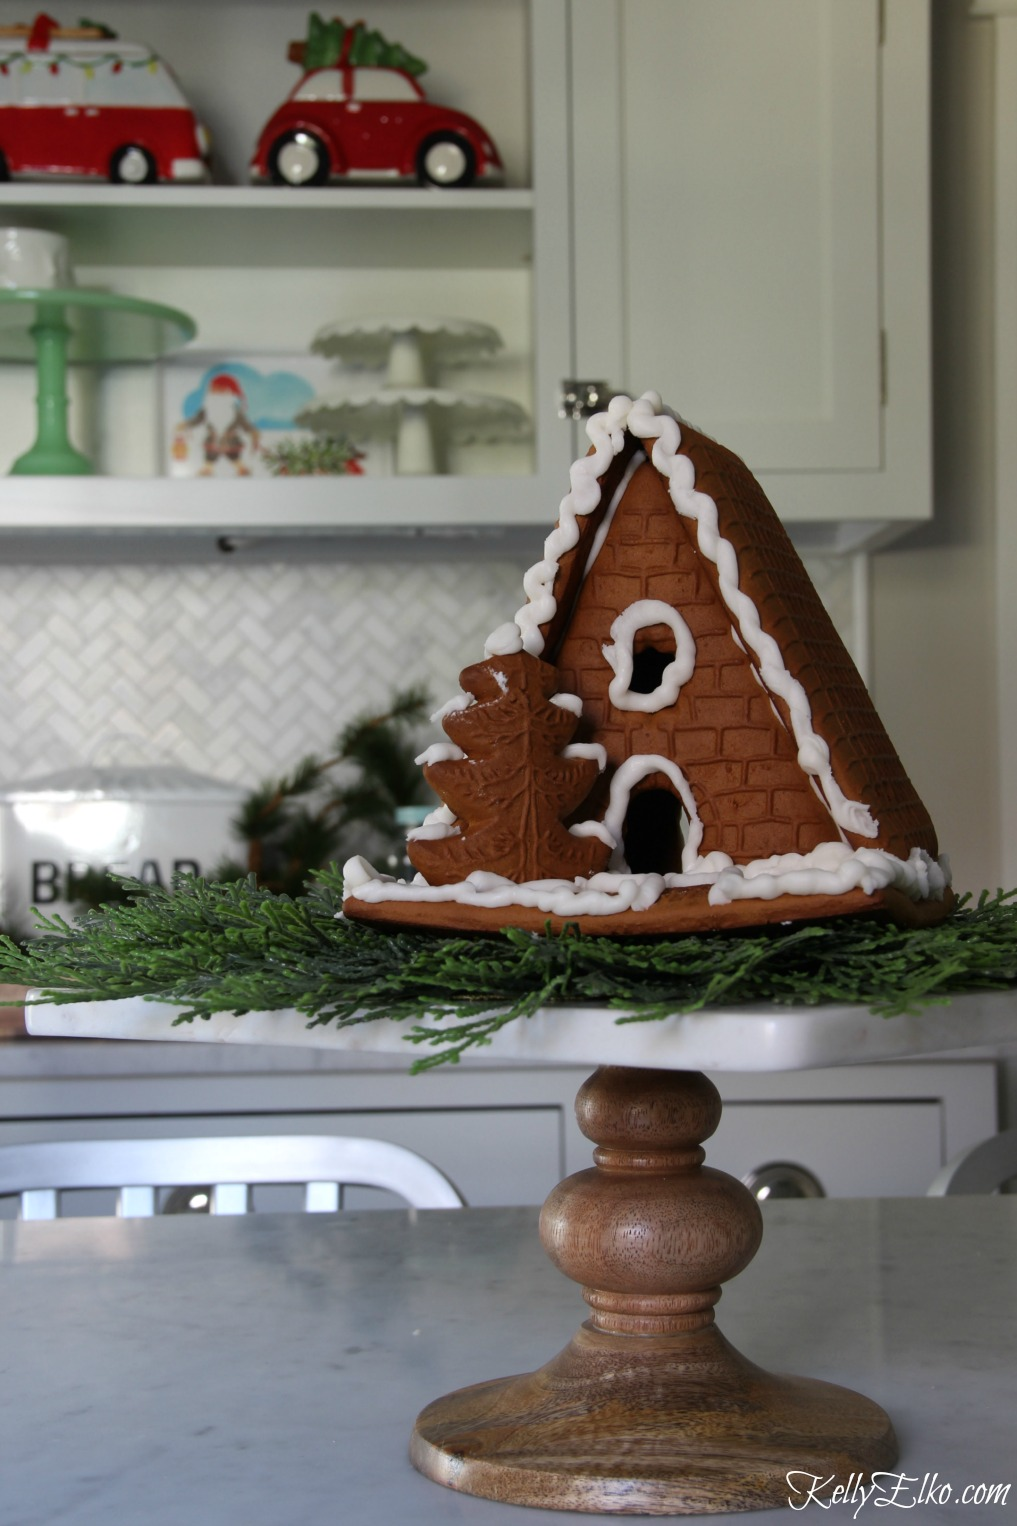 Christmas Kitchen - love the cute little gingerbread house on a cake stand kellyelko.com